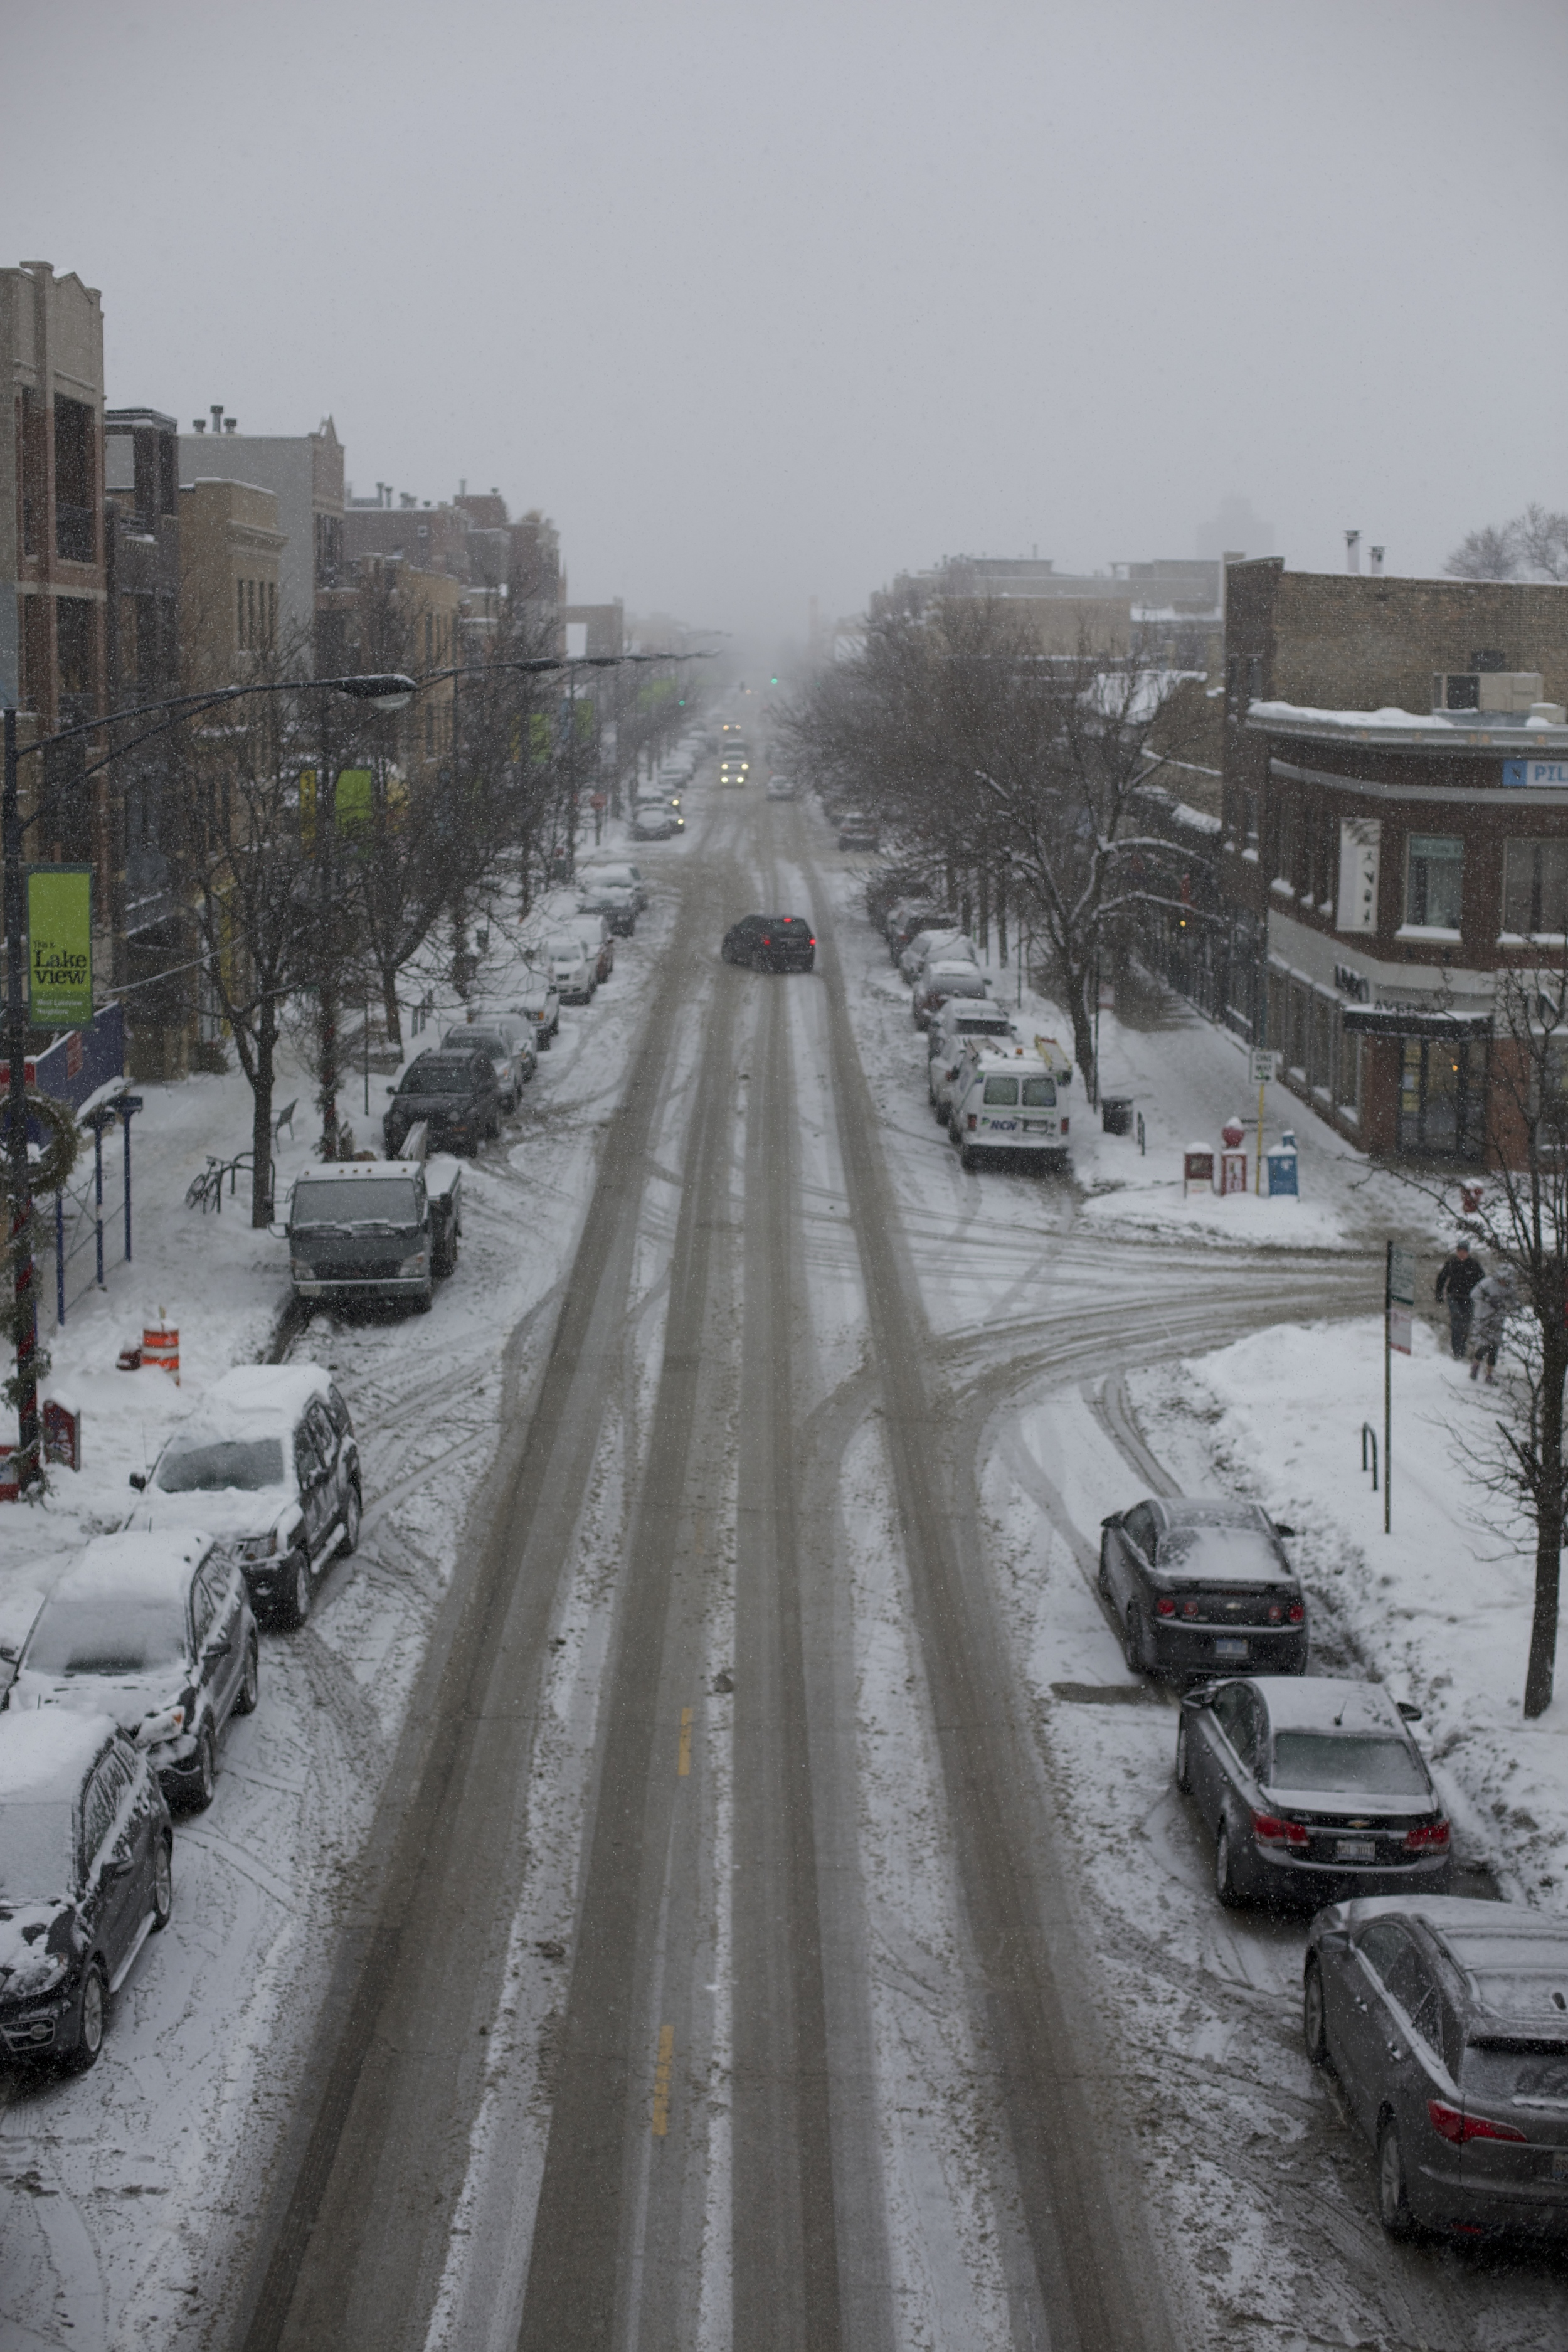 The streets appear clear, but they are still covered in slippery slush despite the constant plowing